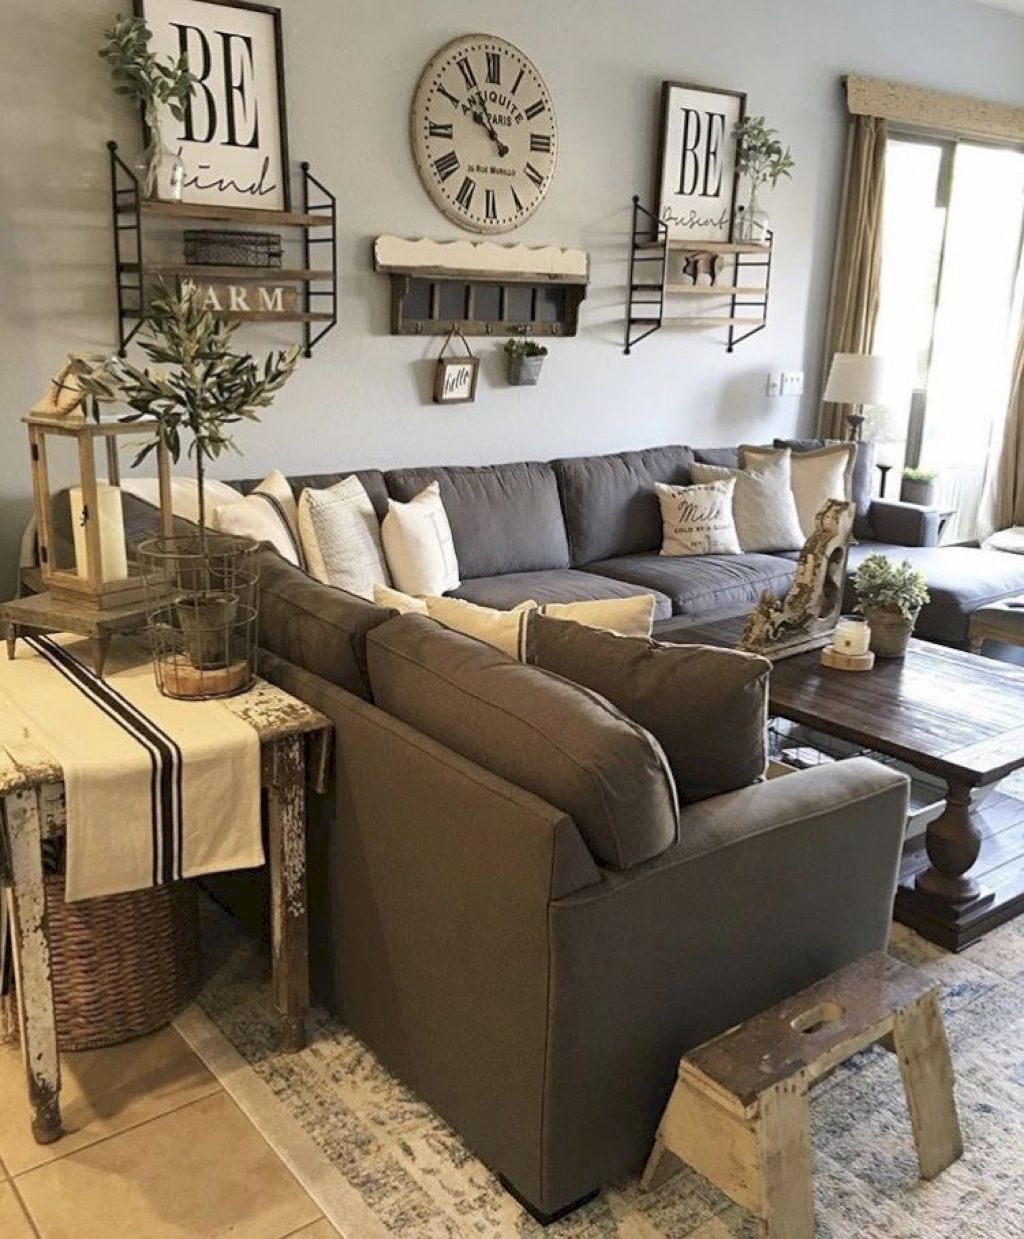 Adorable 35 Best Modern Farmhouse Living Room Decor Ideas Https